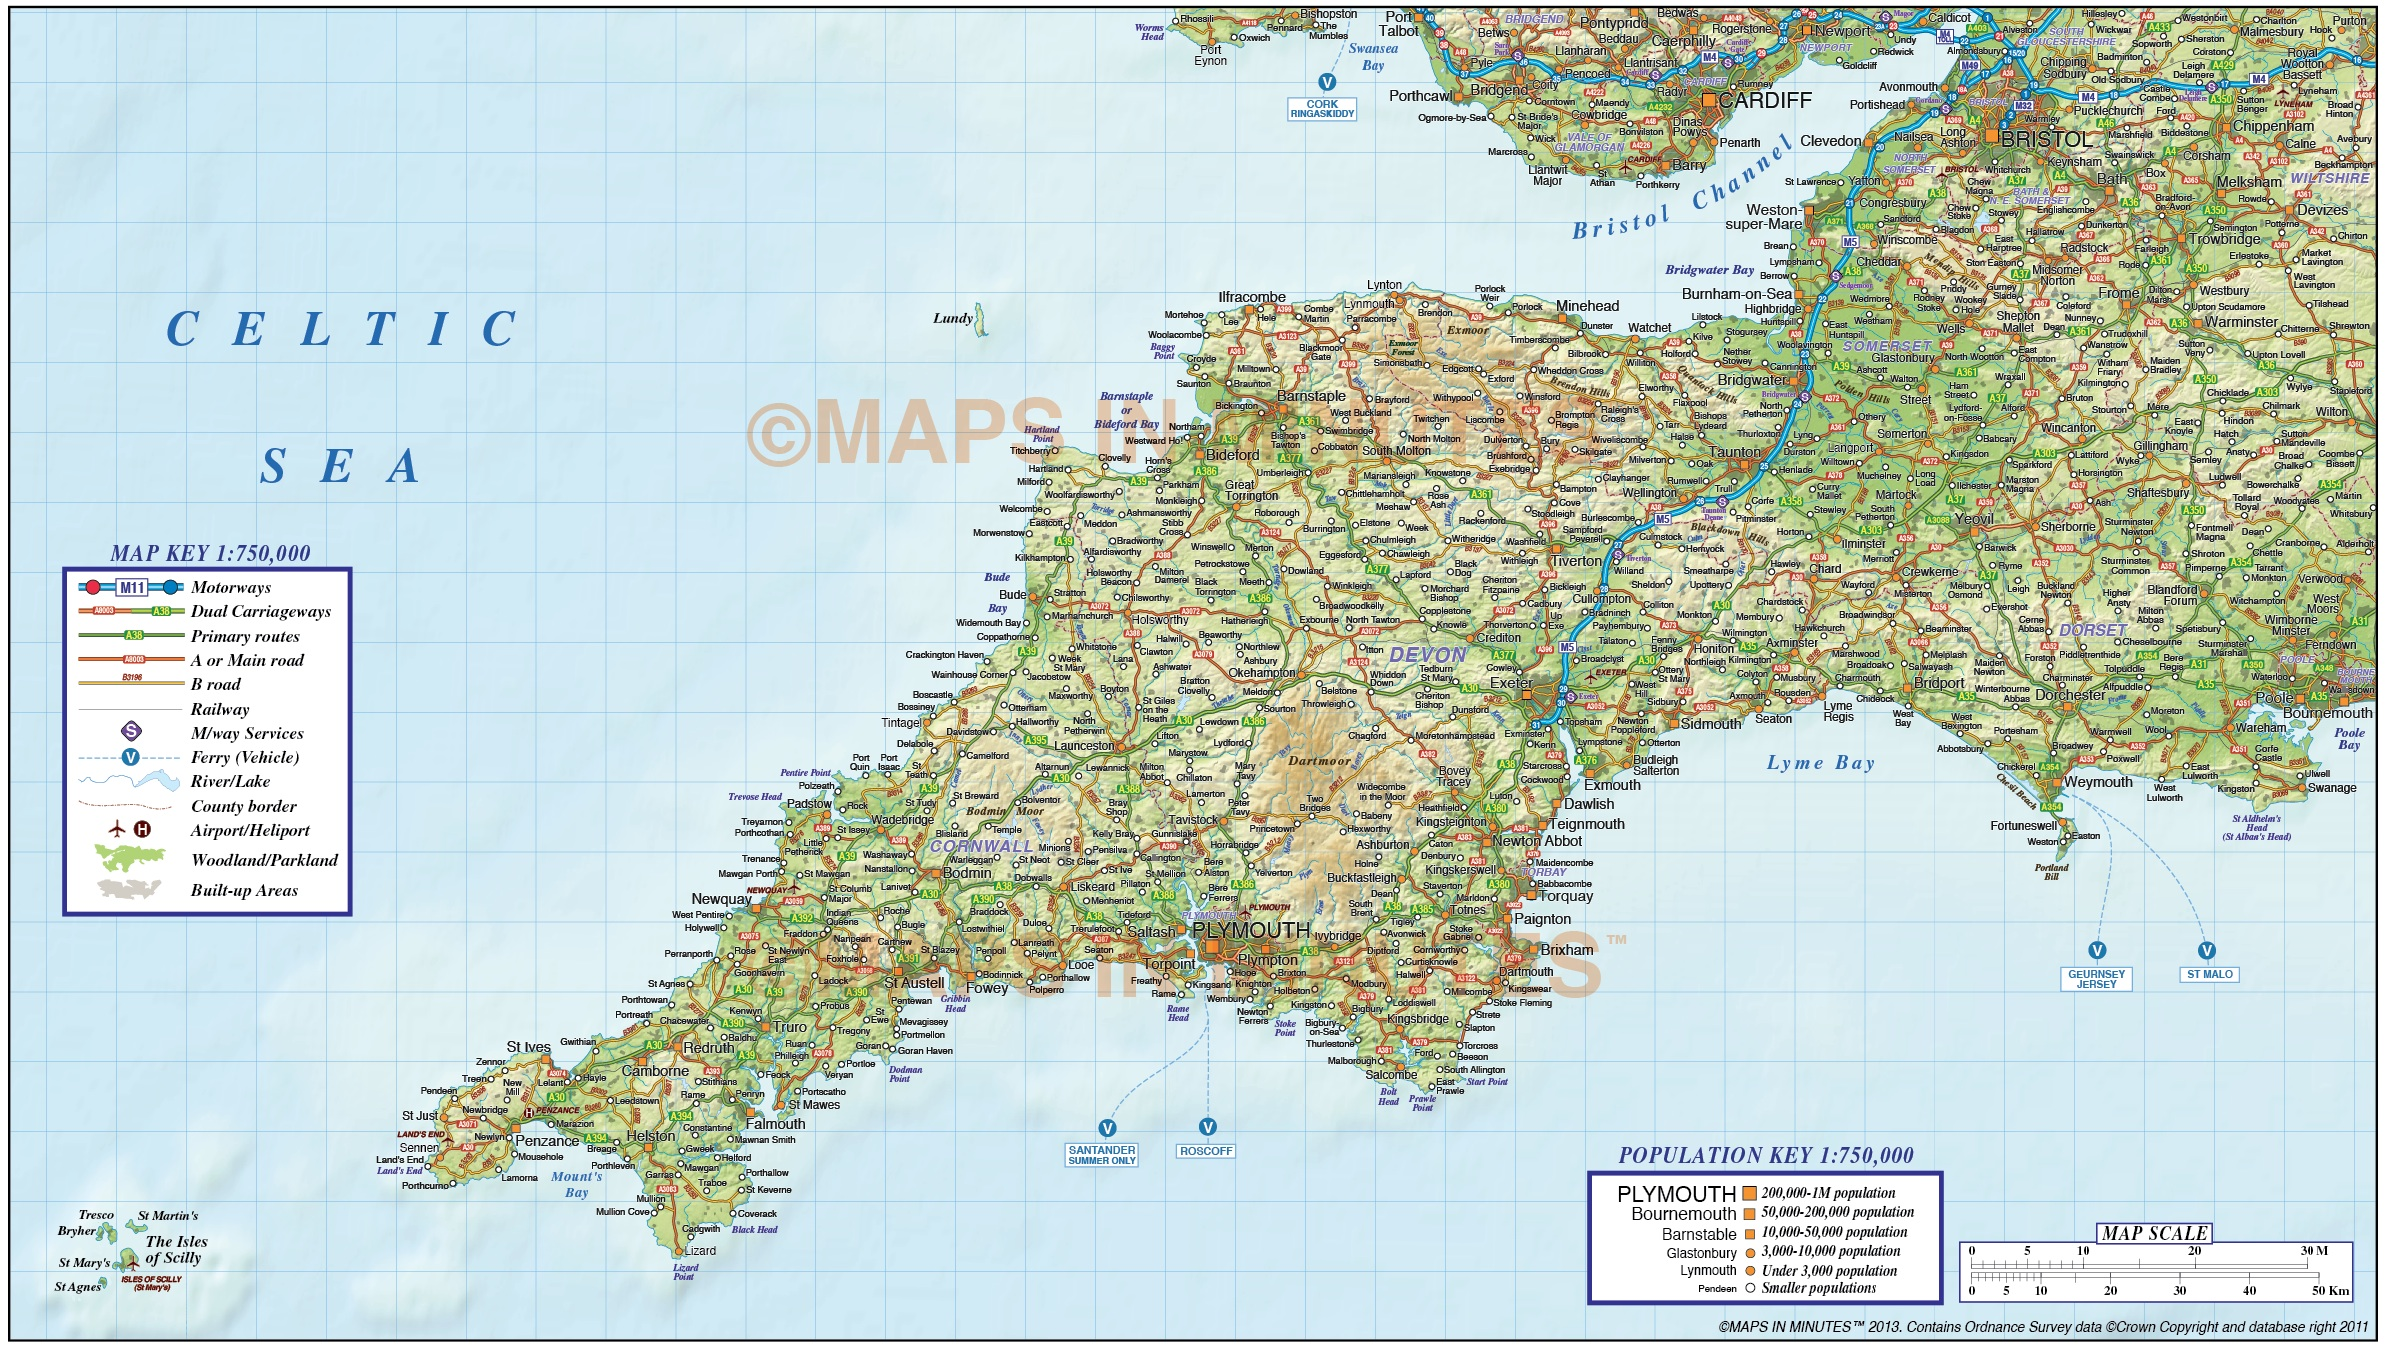 south west england political county road u0026 rail map with regular